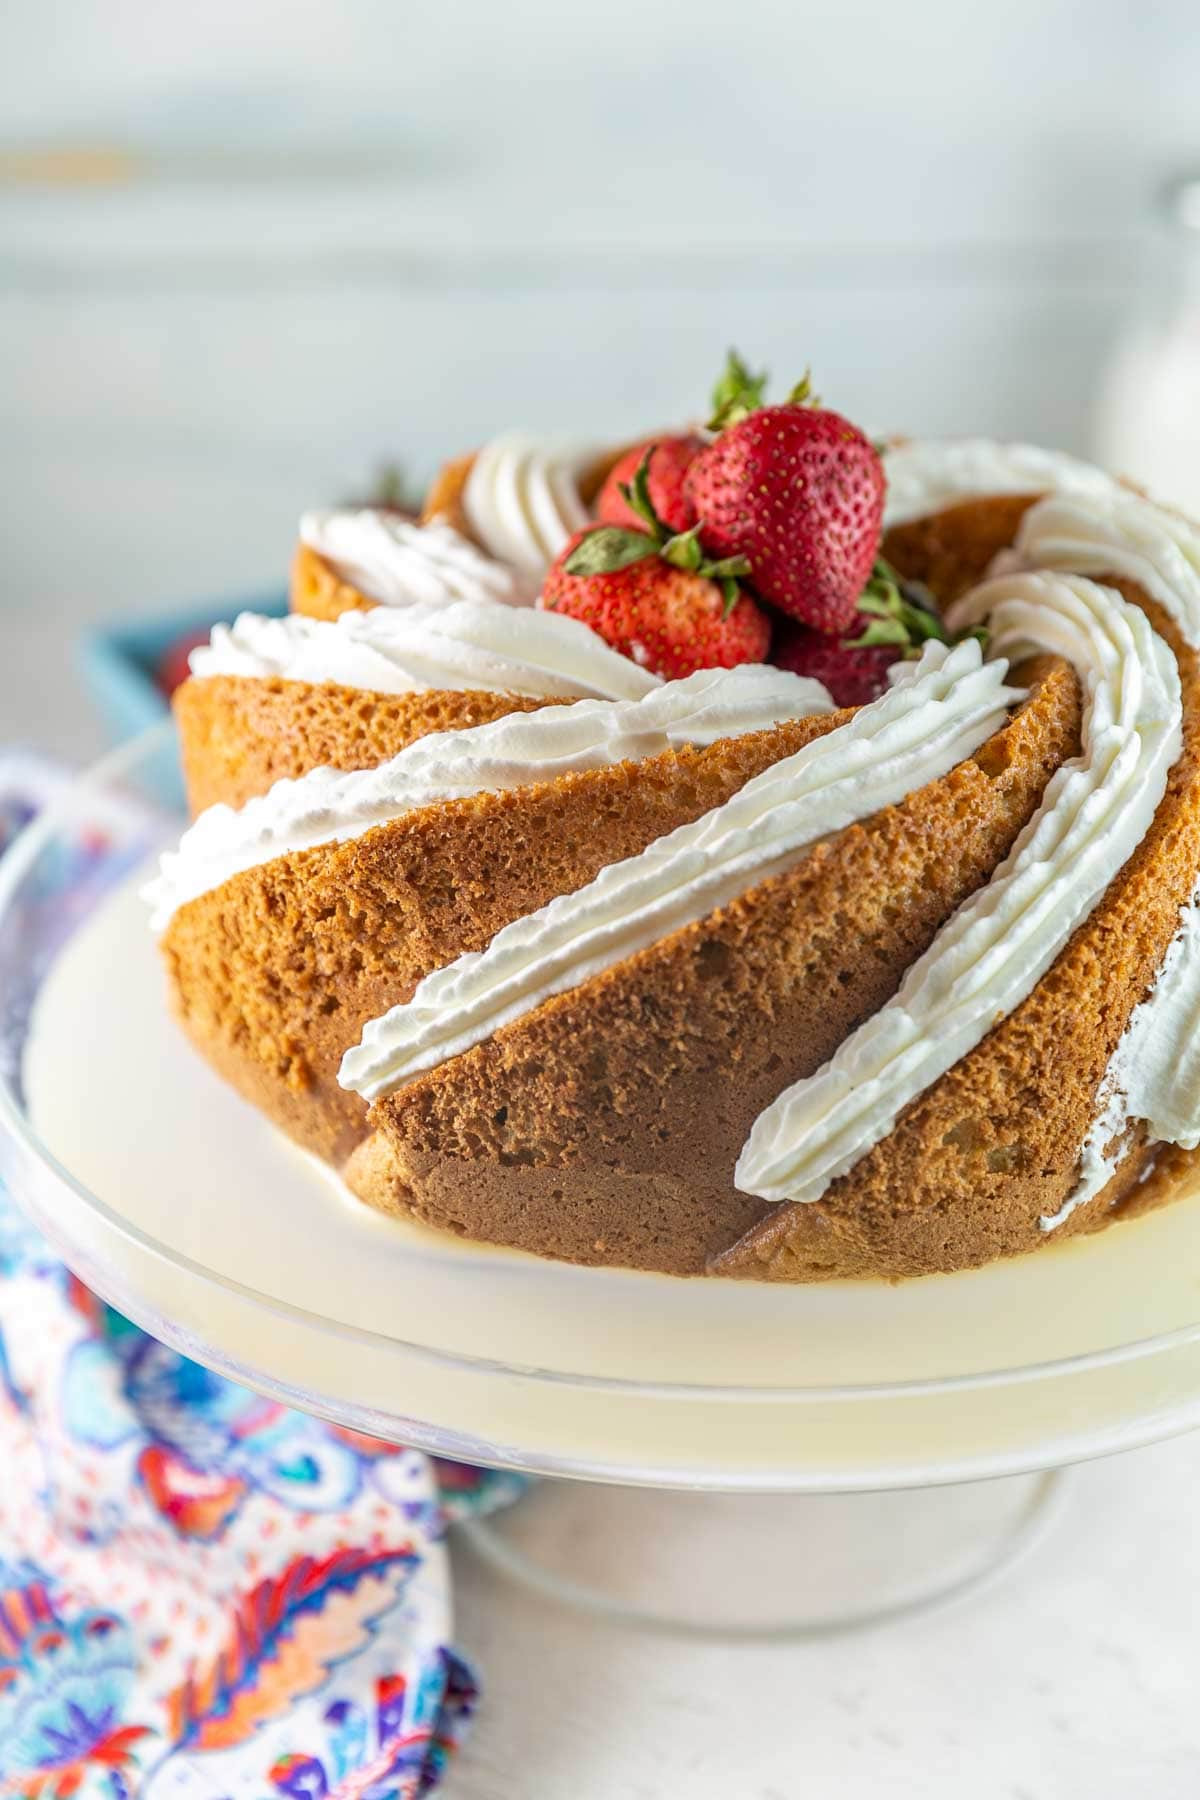 sponge cake baked in a bundt pan soaked in milk and decorated with whipped cream and strawberries